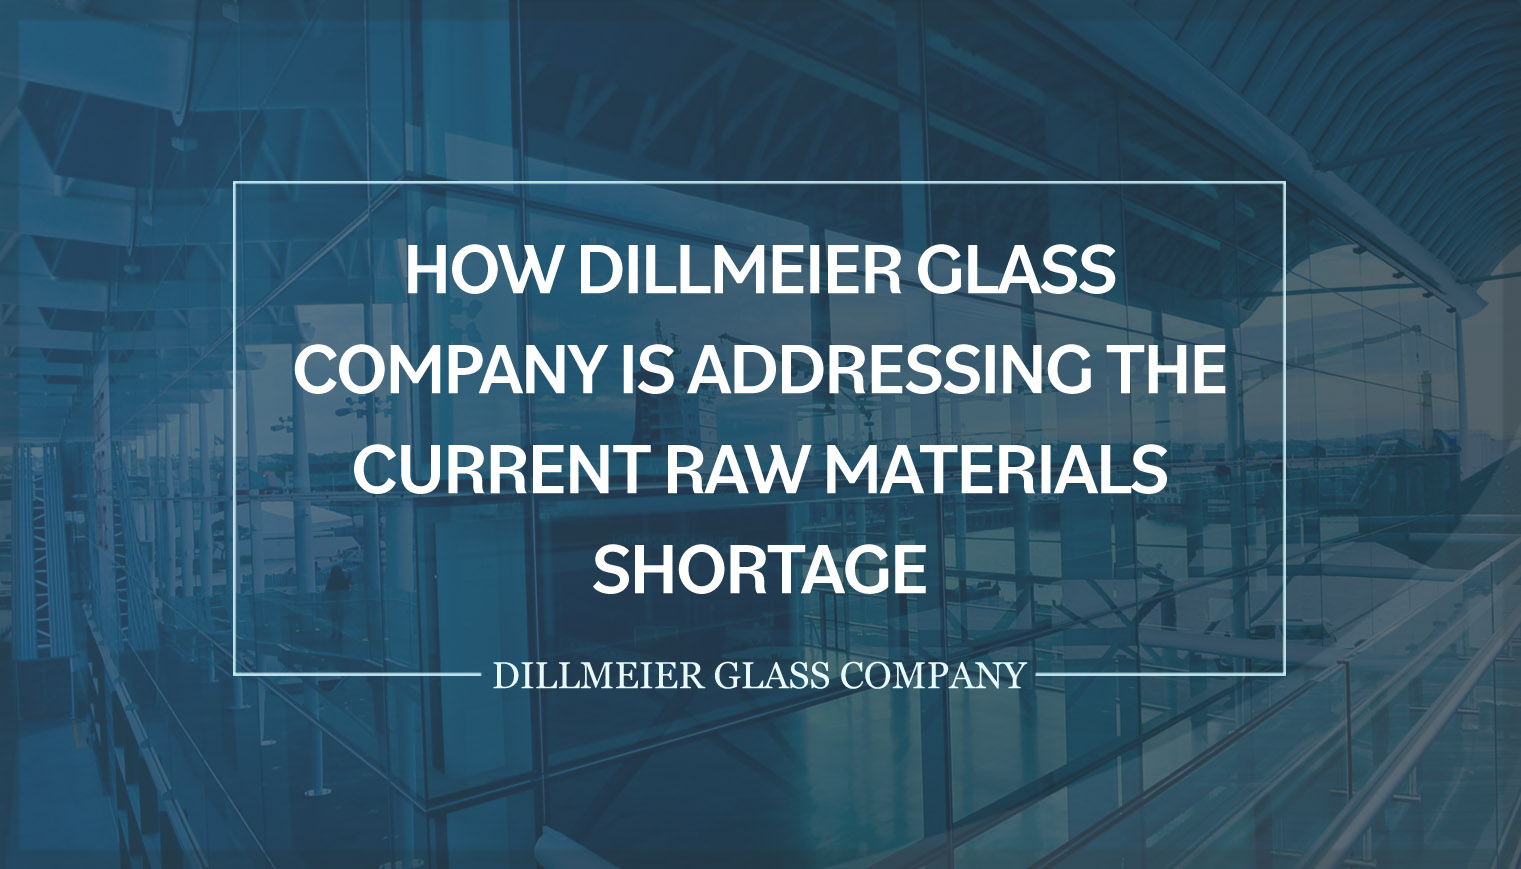 How Dillmeier Glass Company Is Addressing the Current Raw Materials Shortage